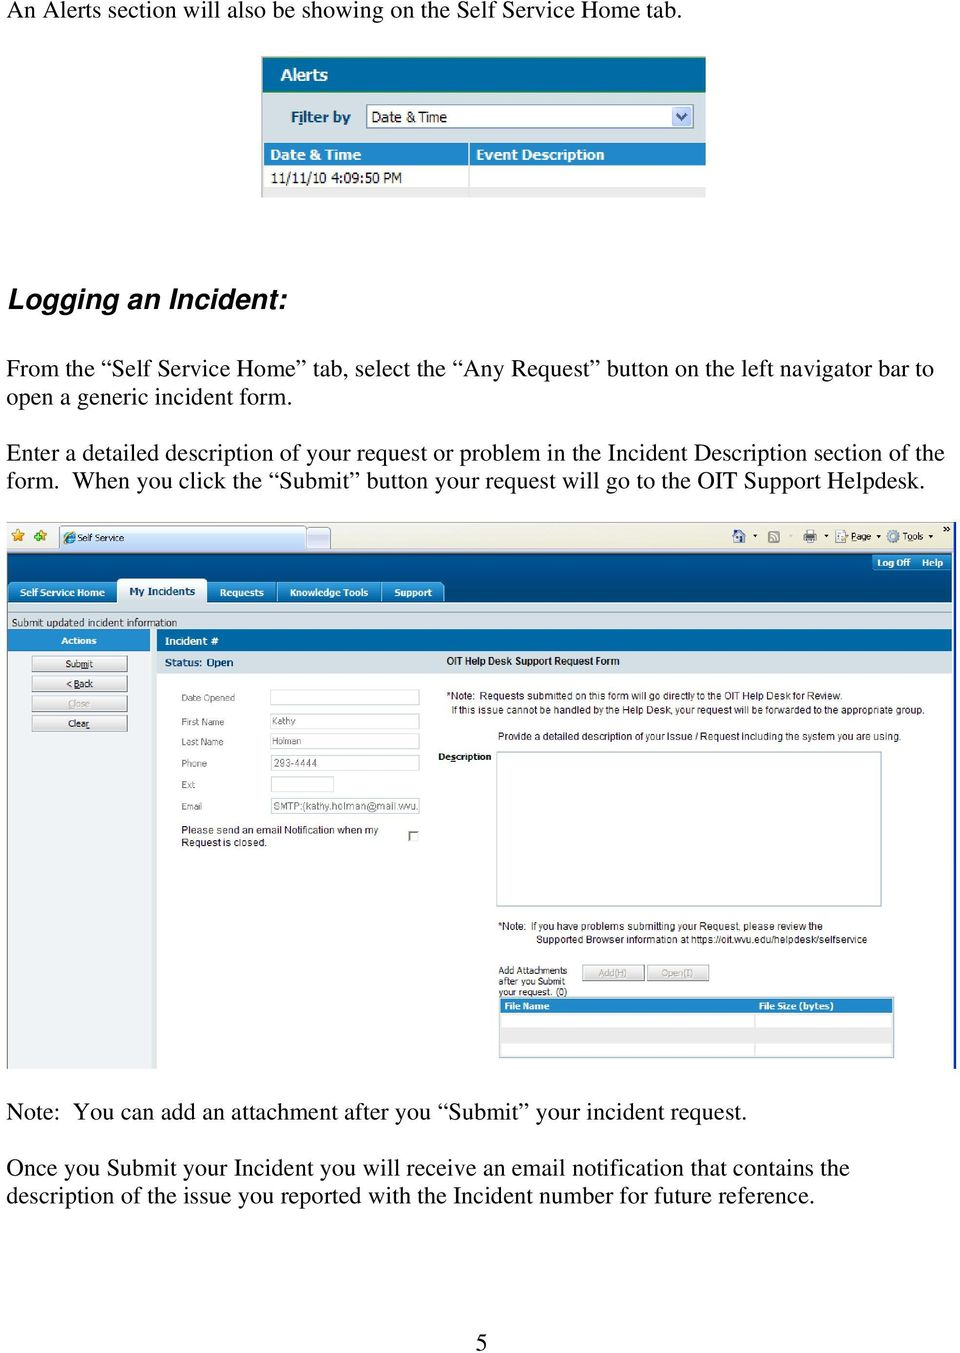 Enter a detailed description of your request or problem in the Incident Description section of the form.